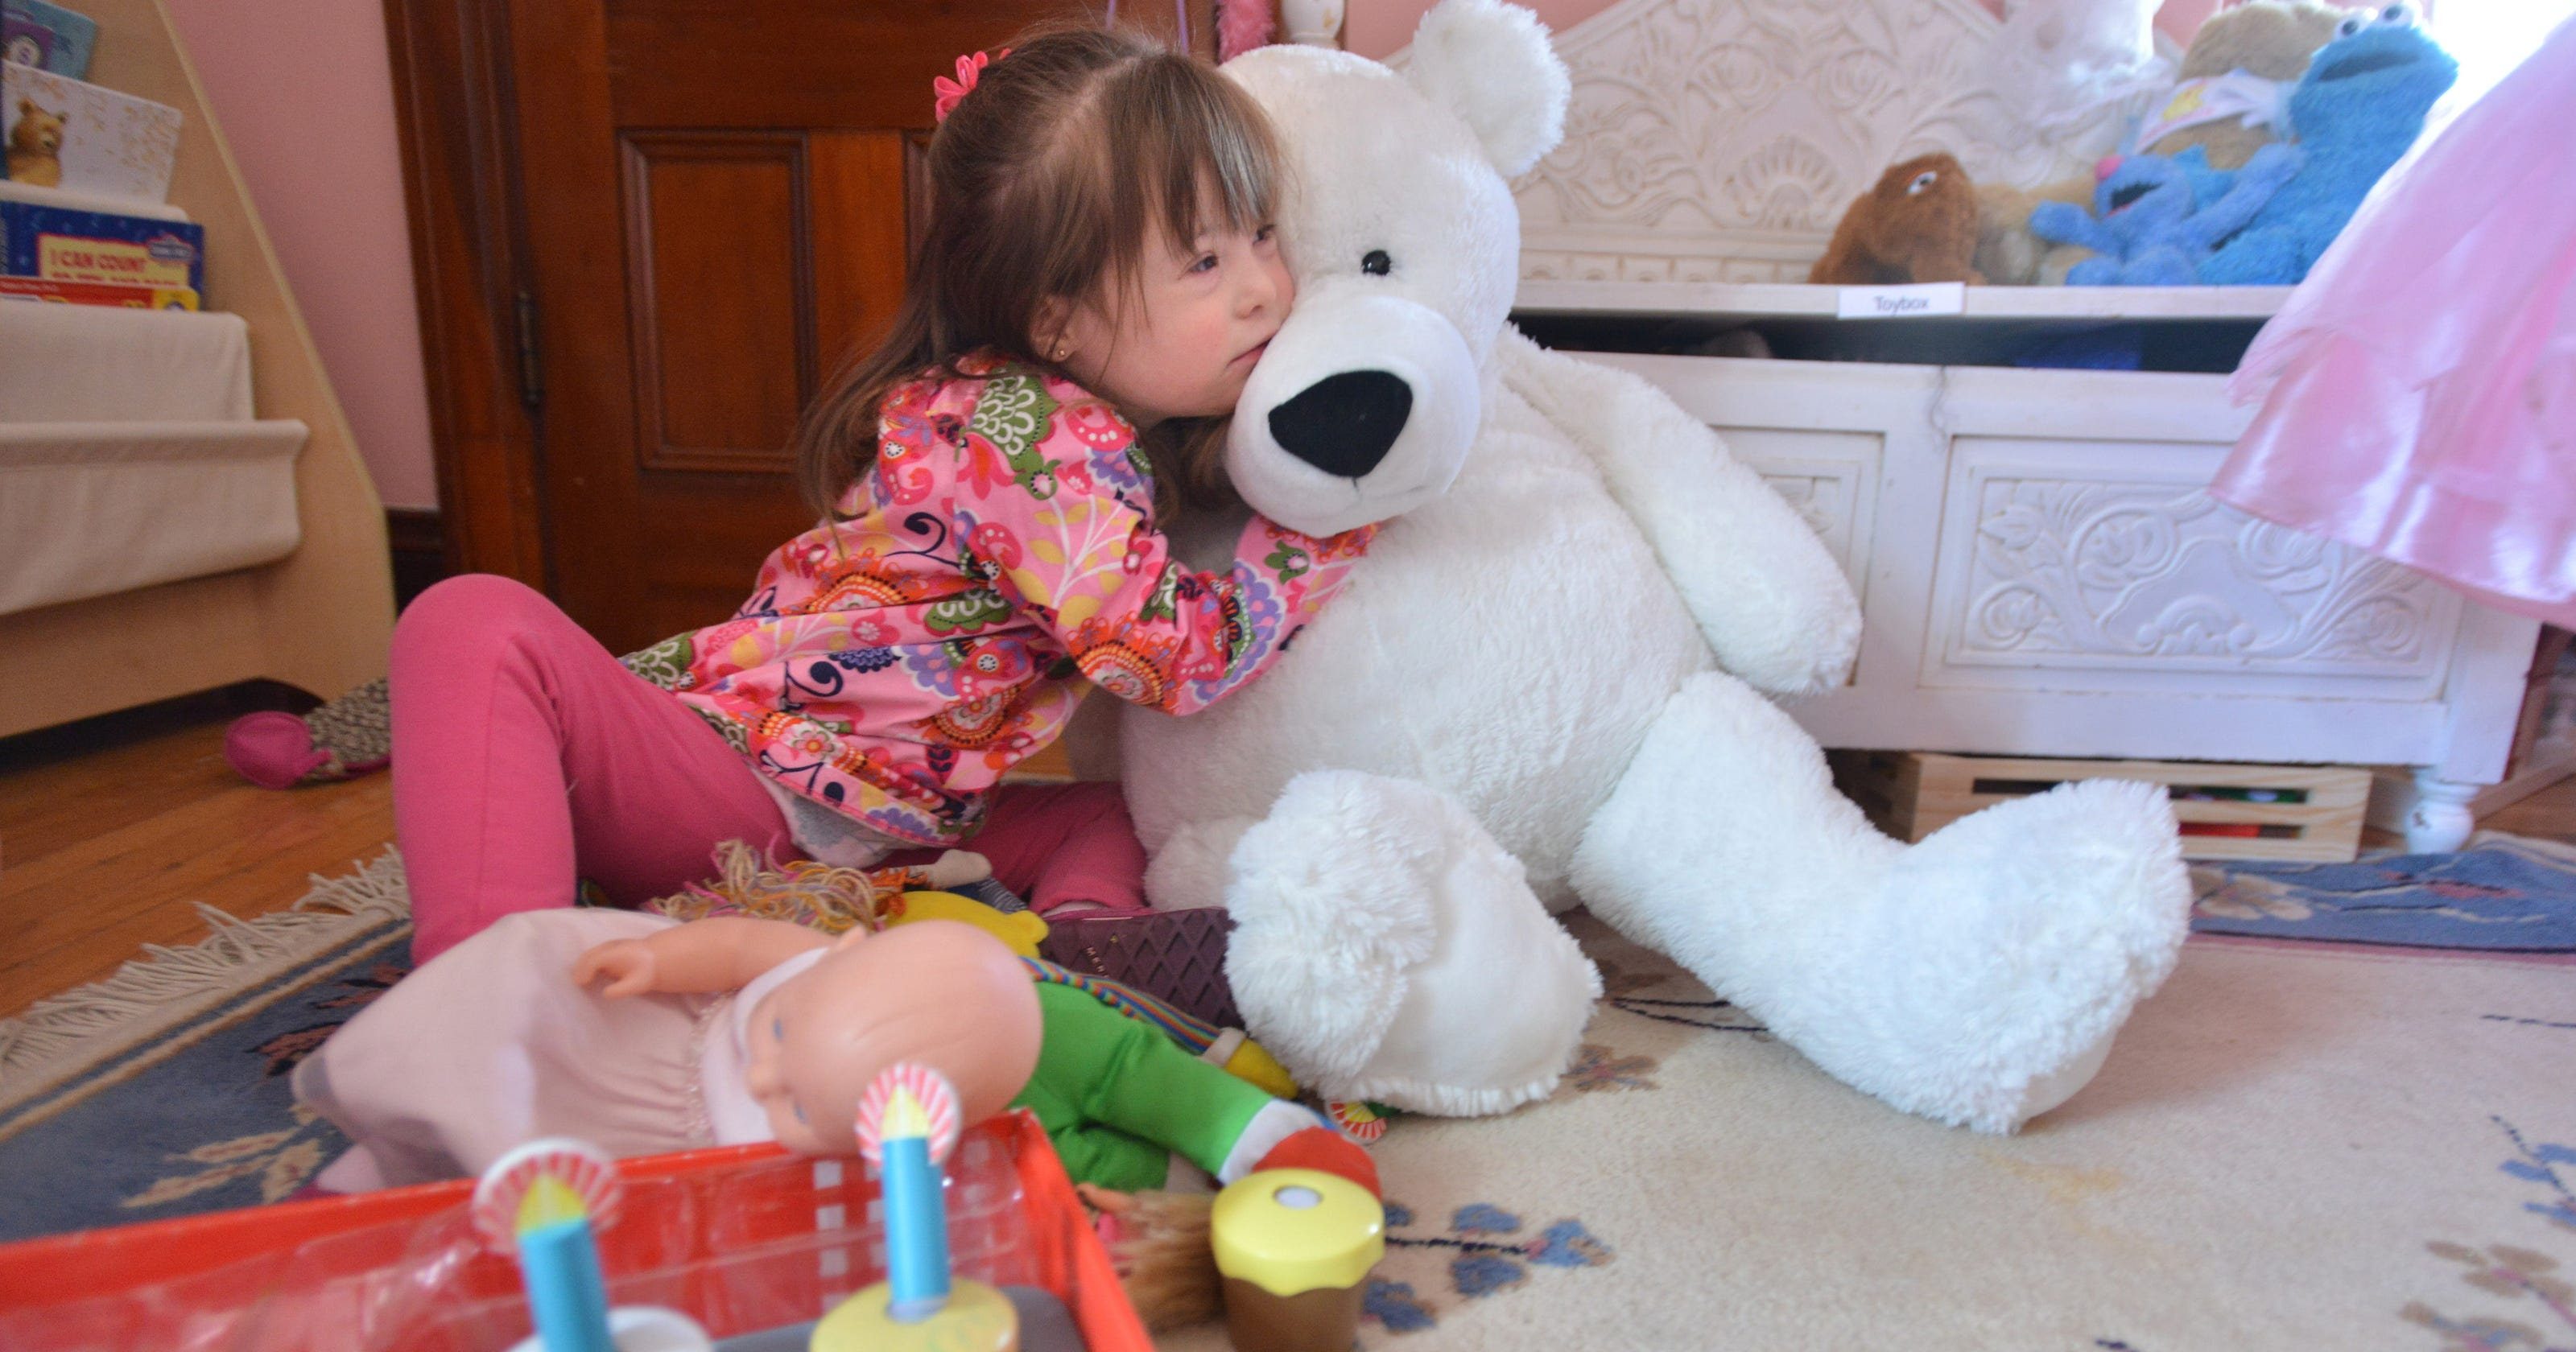 With Down syndrome diagnoses es a wrenching choice